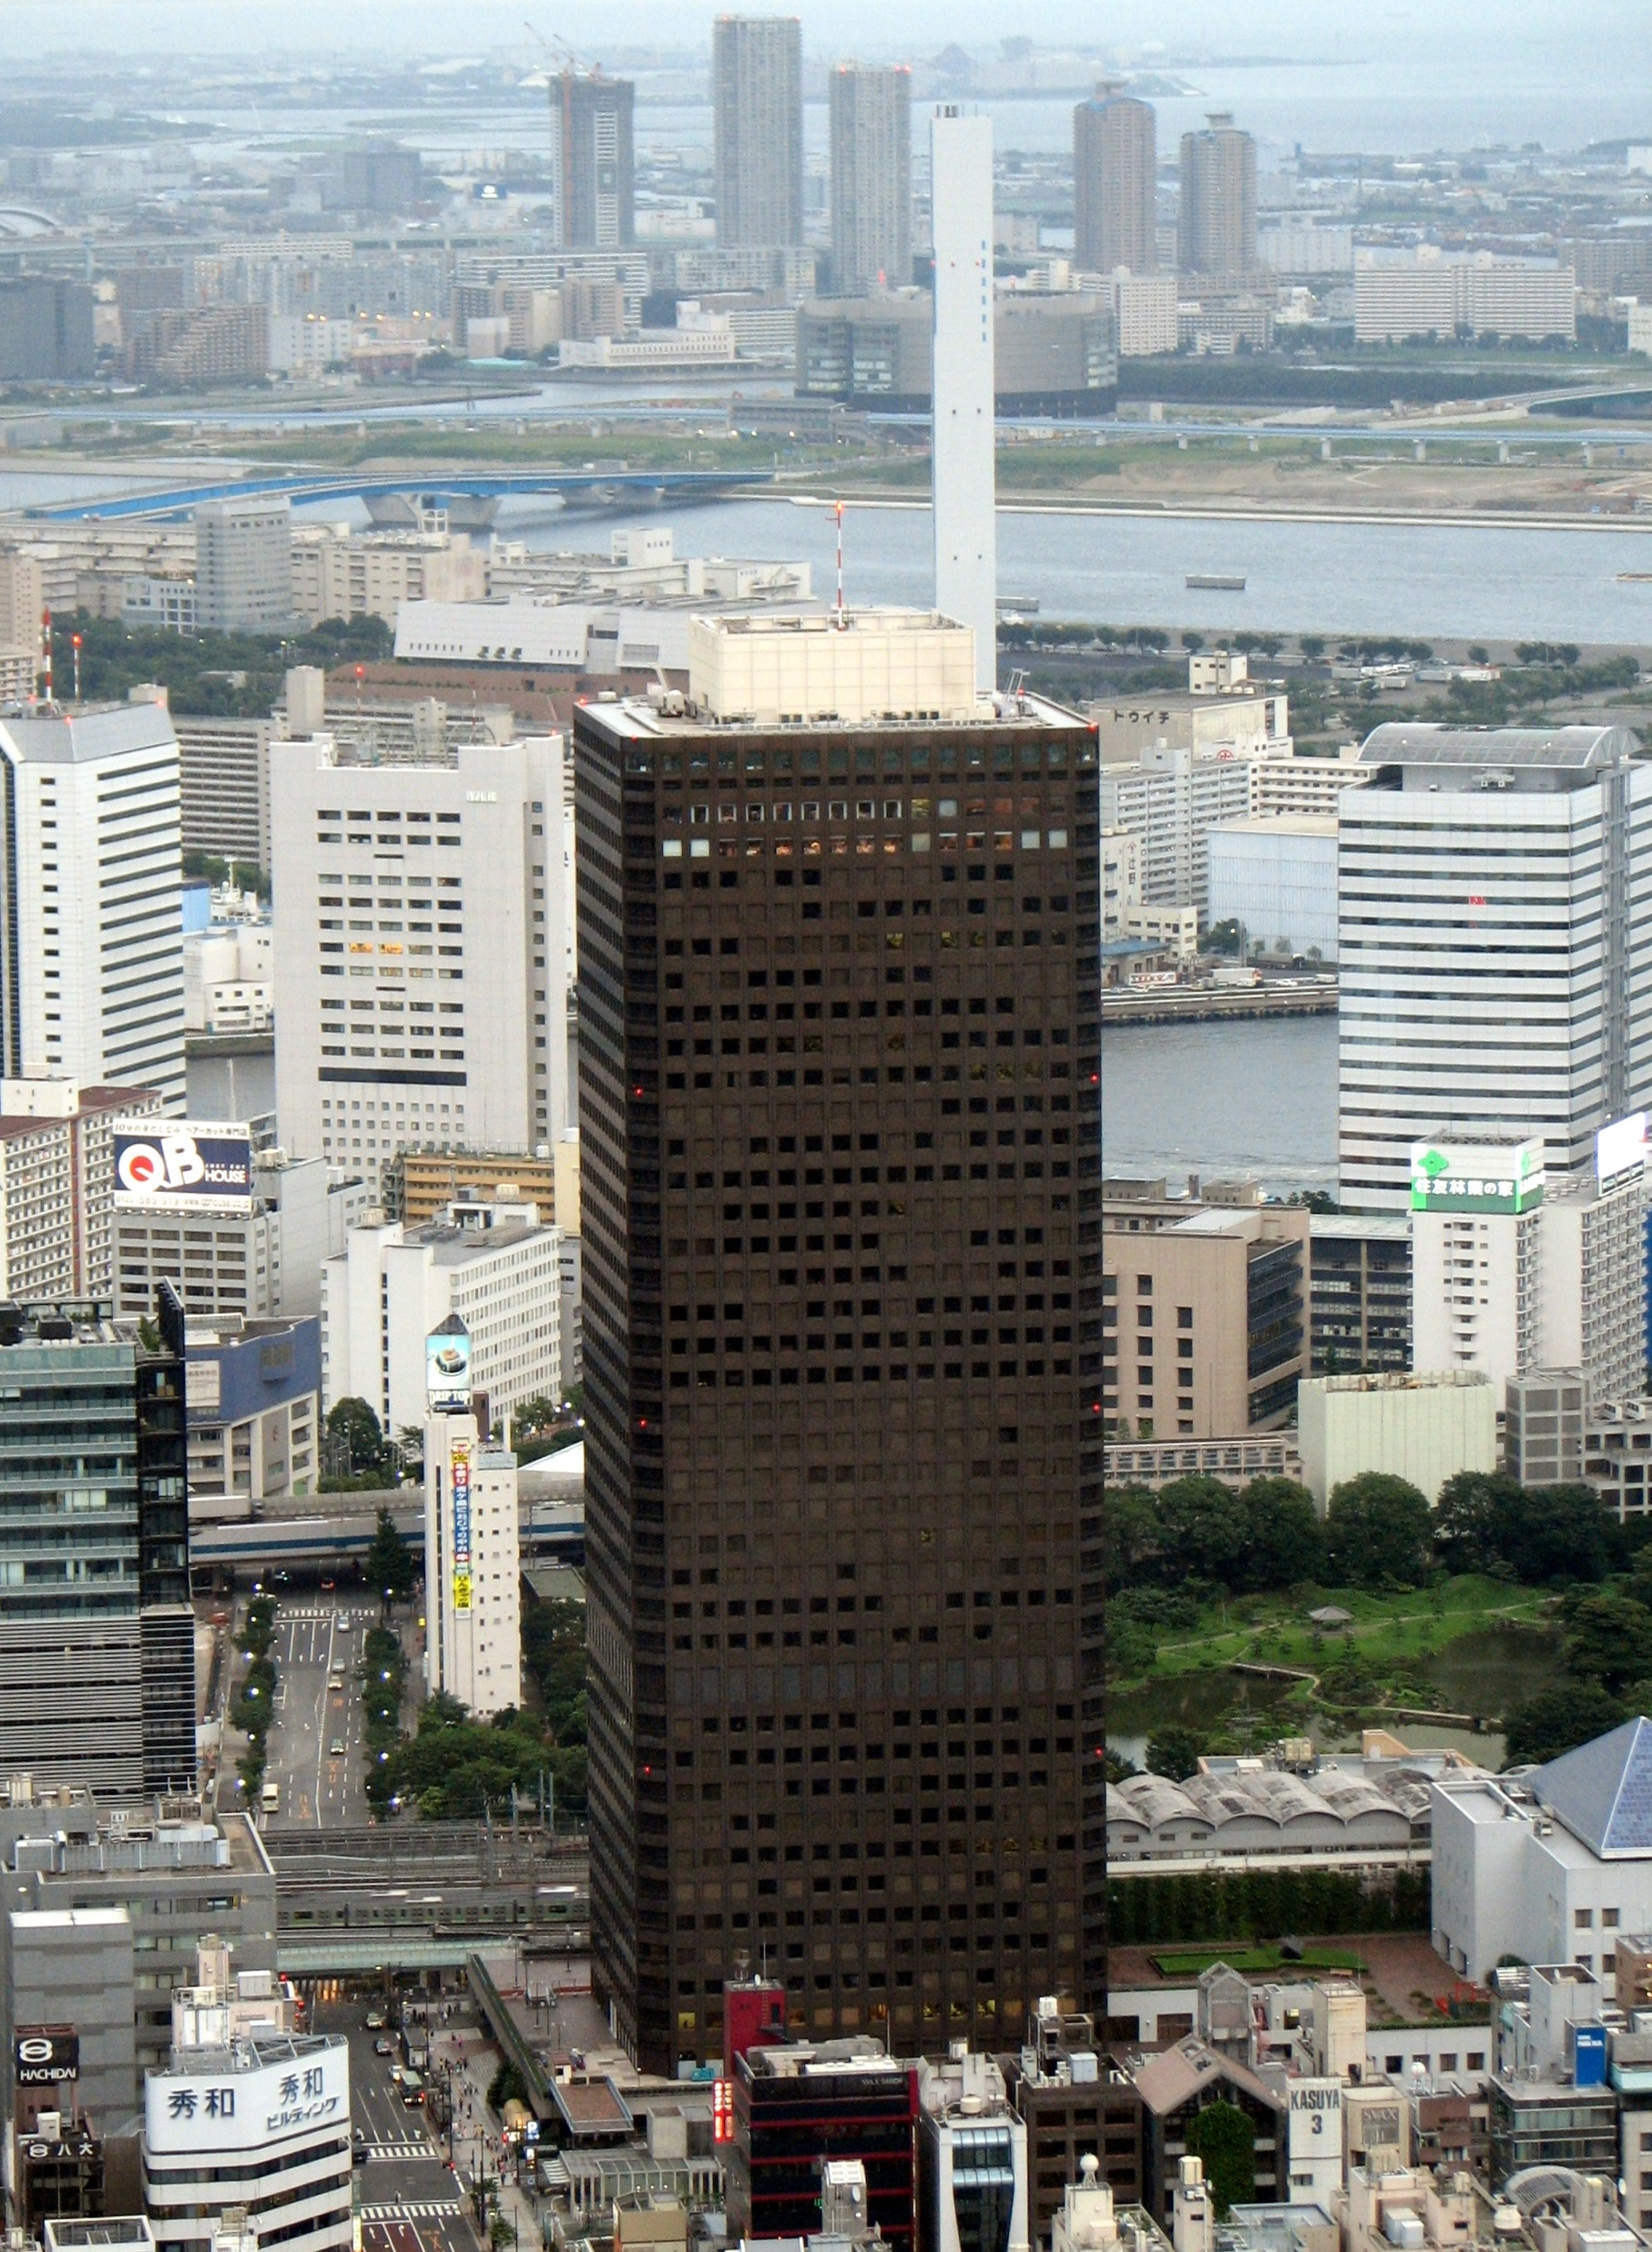 http://upload.wikimedia.org/wikipedia/commons/a/a7/Tokyo_World_Trade_Center_from_Tokyo_Tower.jpg